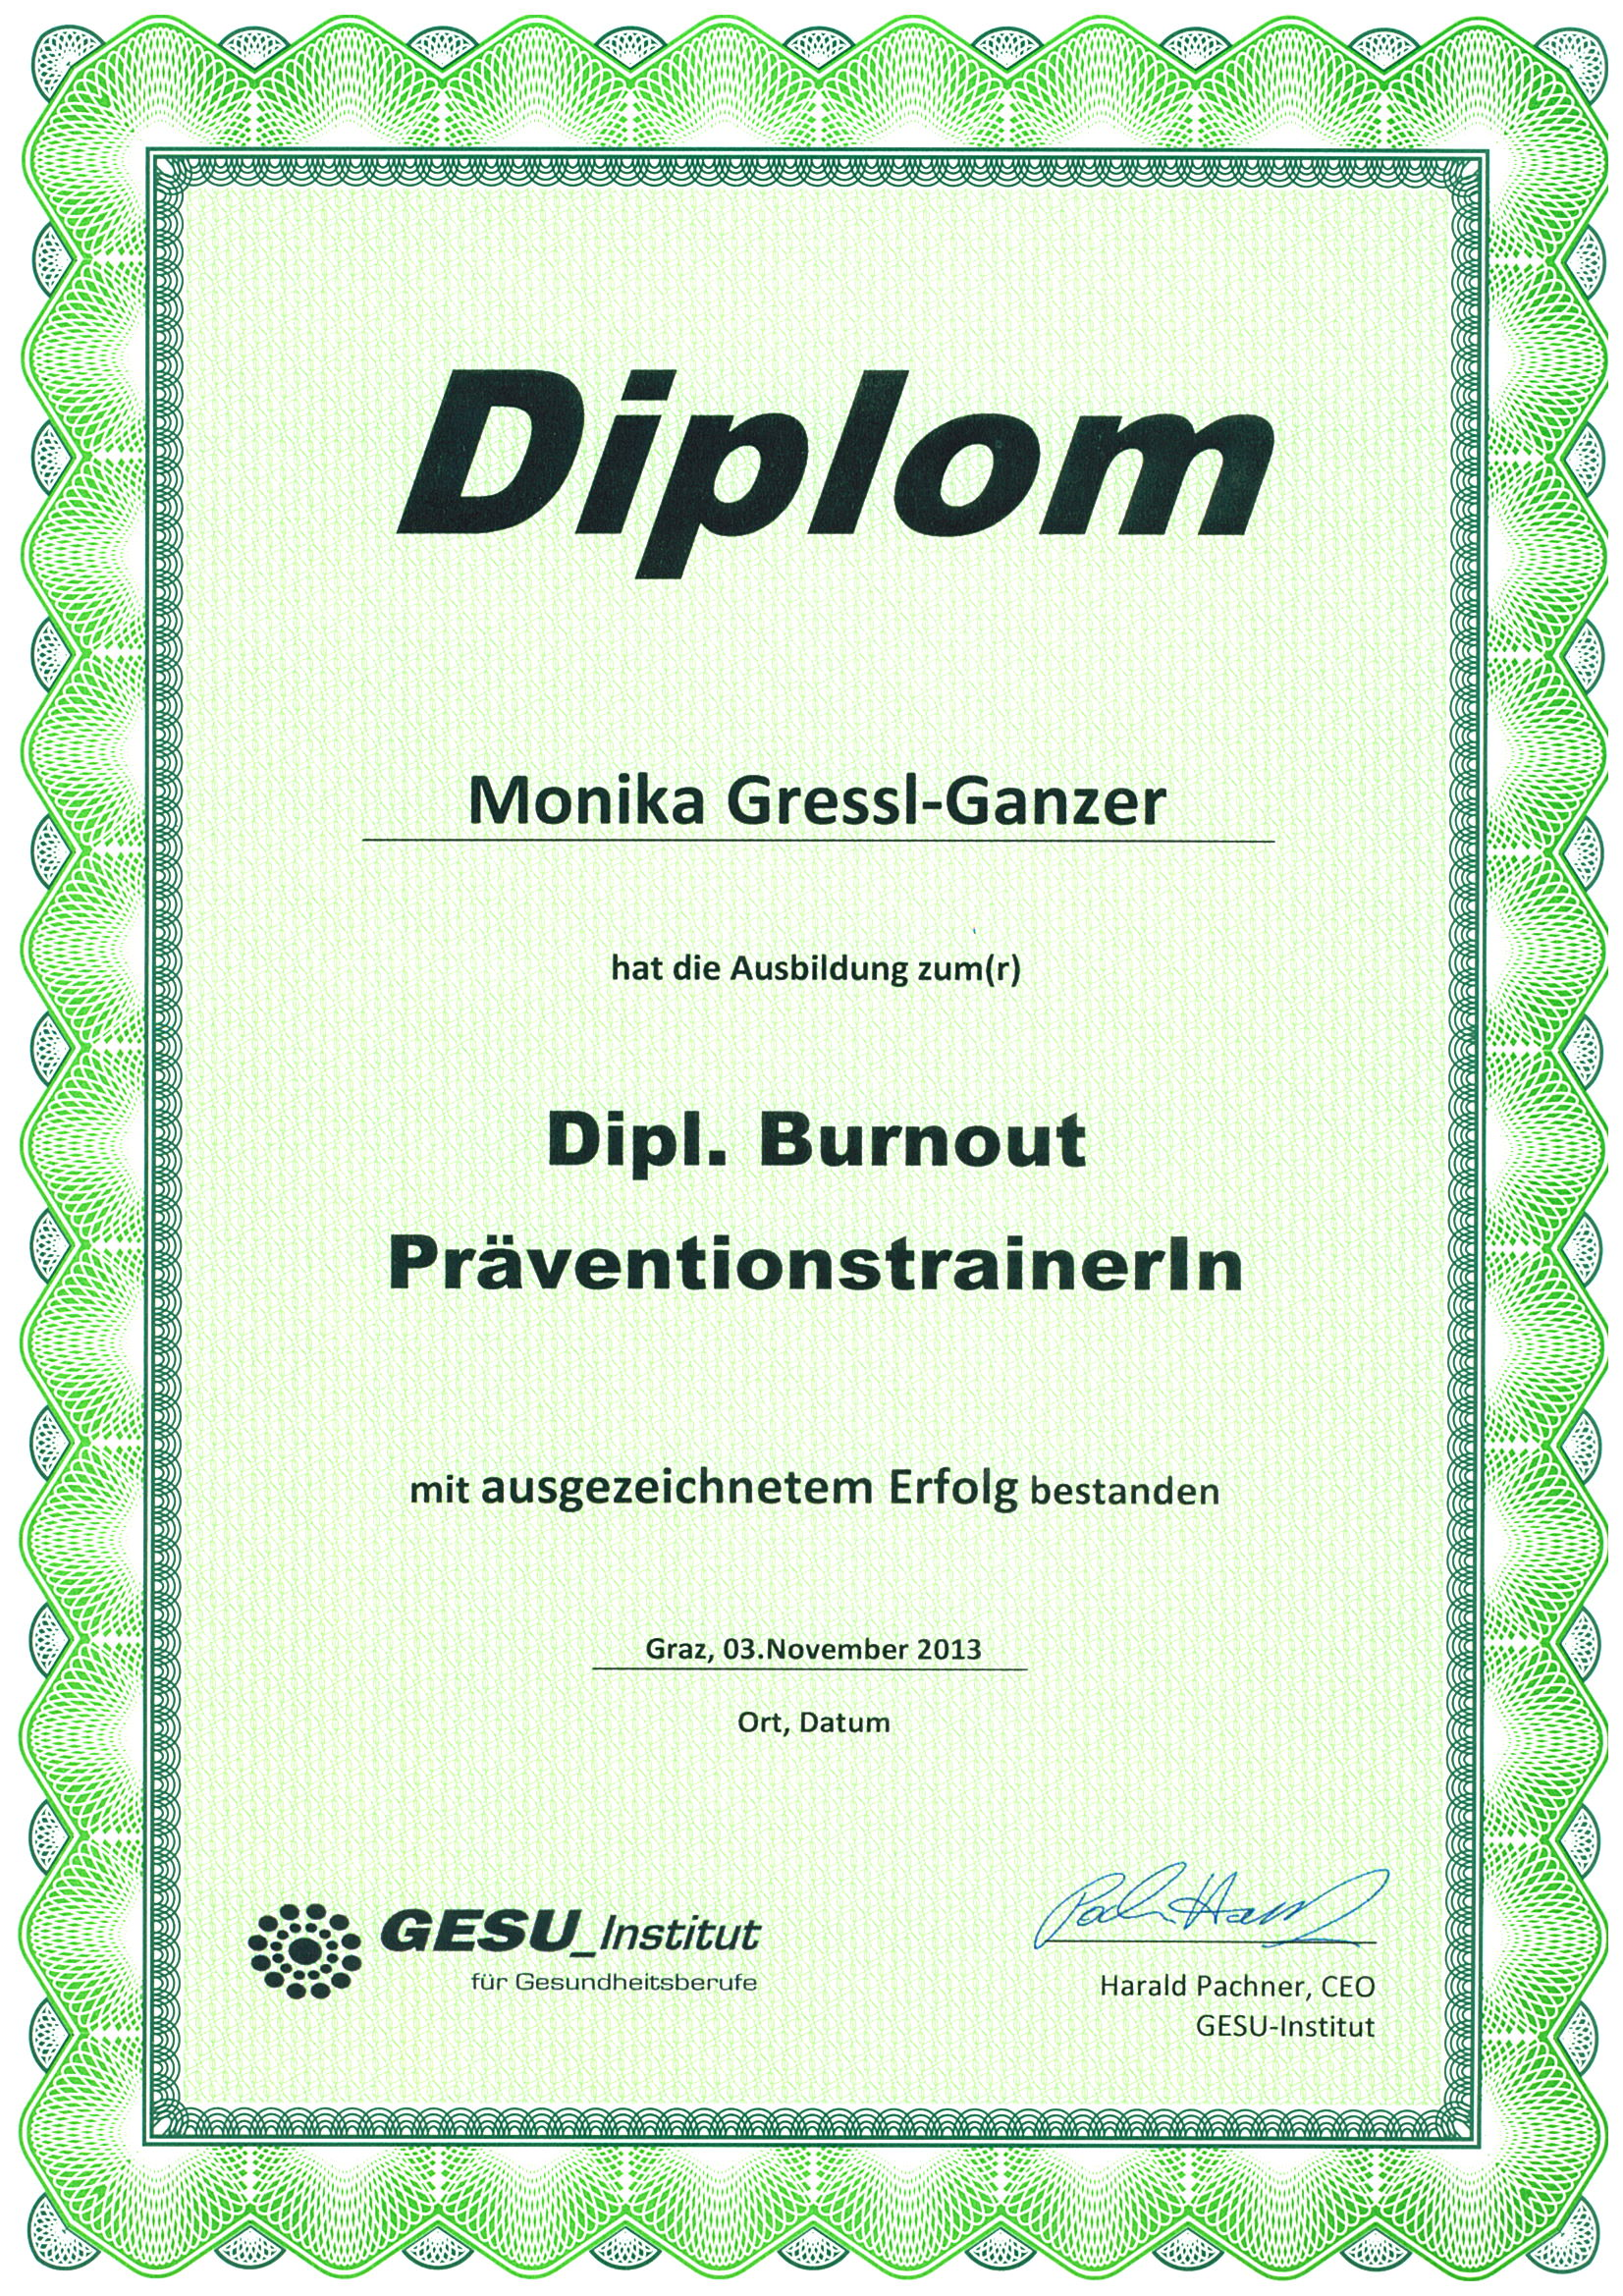 Diplom Burnout Präventionstrainerin